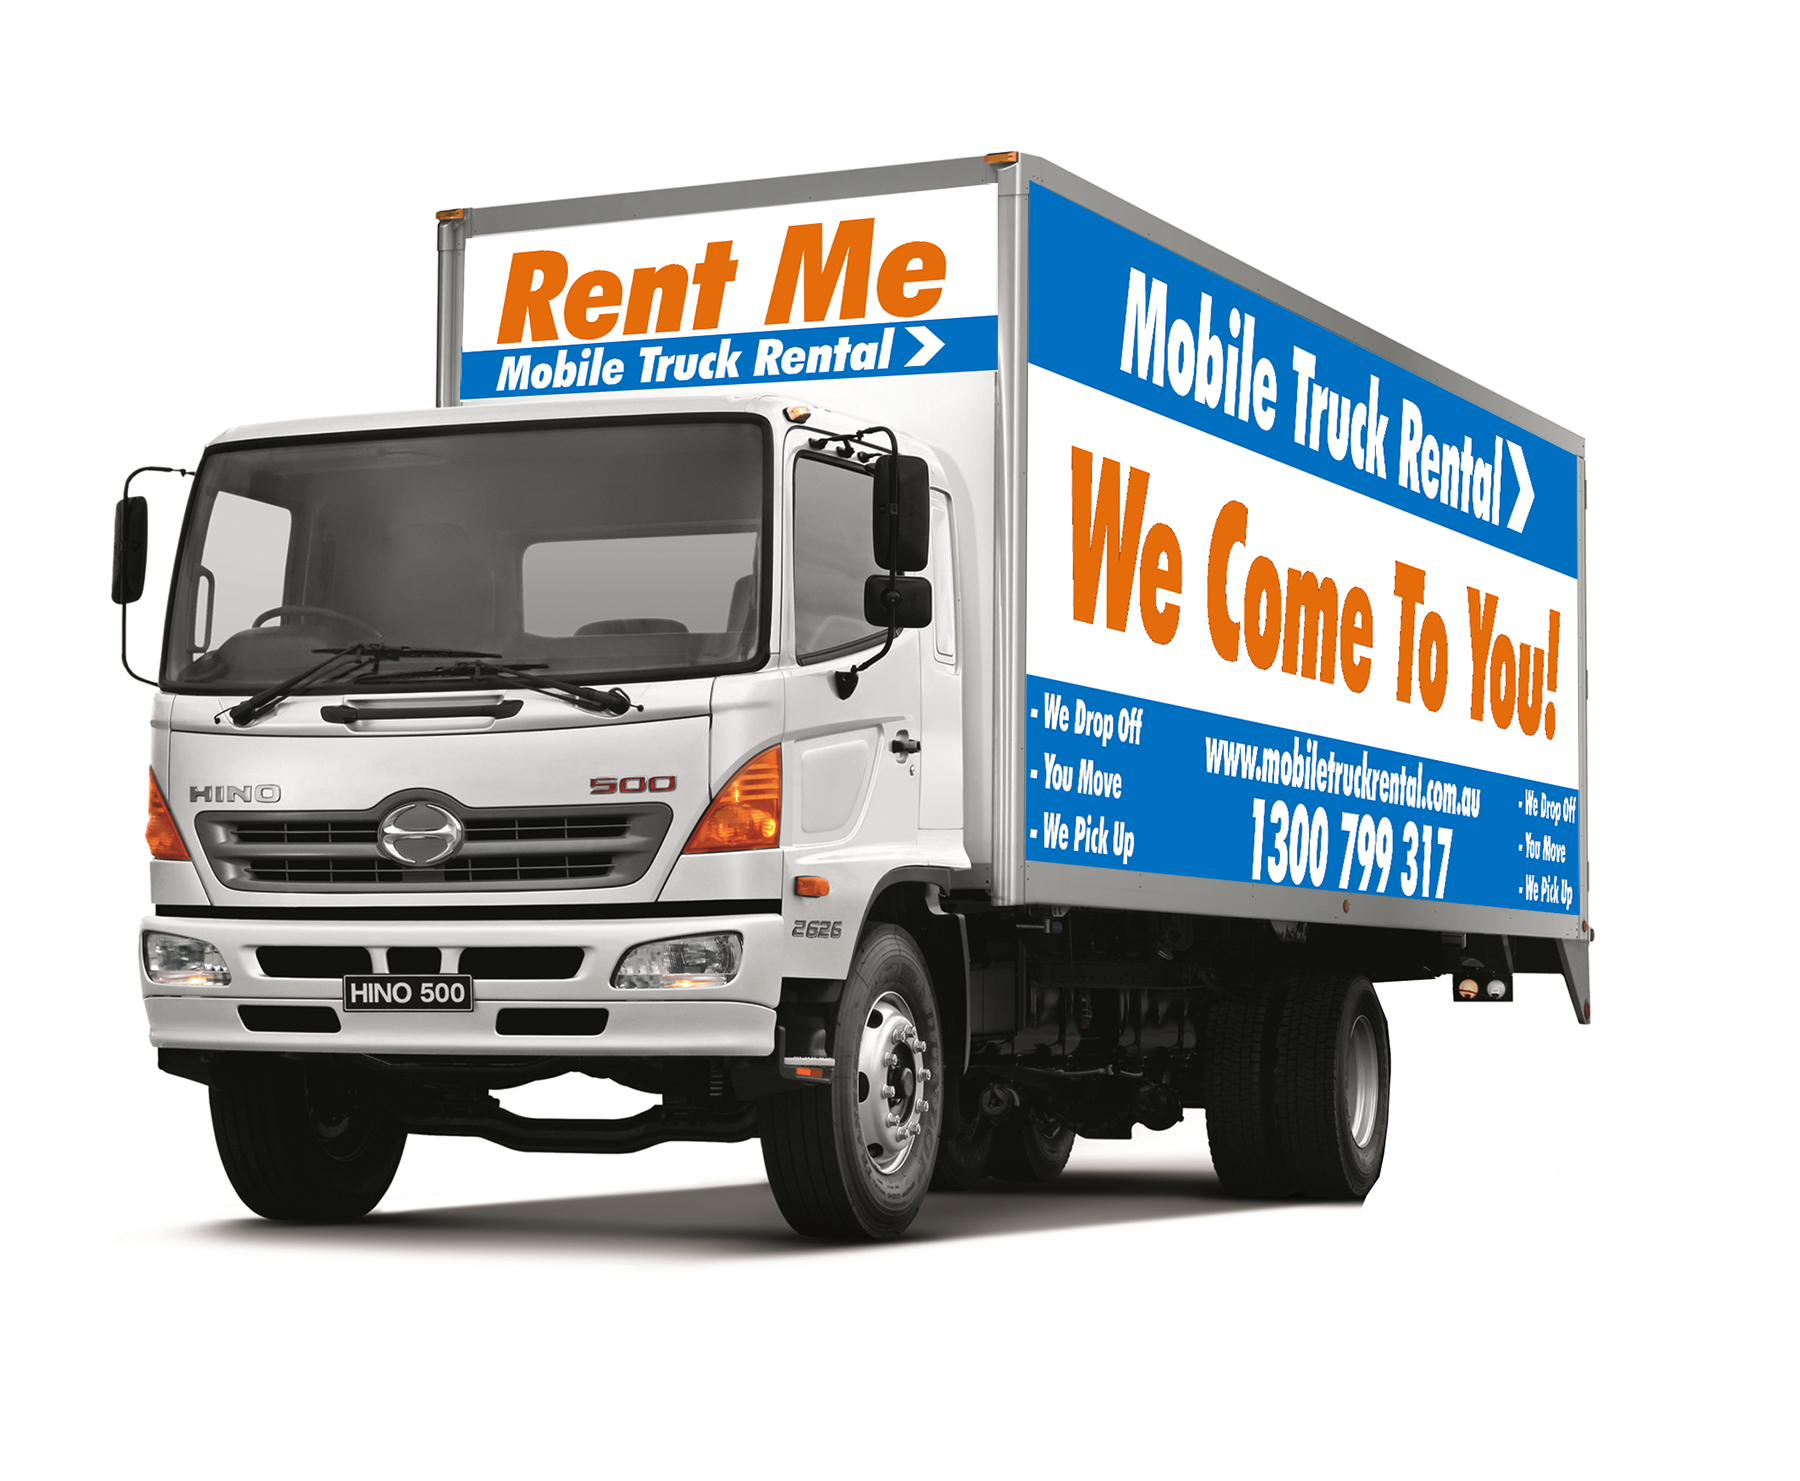 Pantech Truck Hire Moving Truck Rentals Mobile Truck